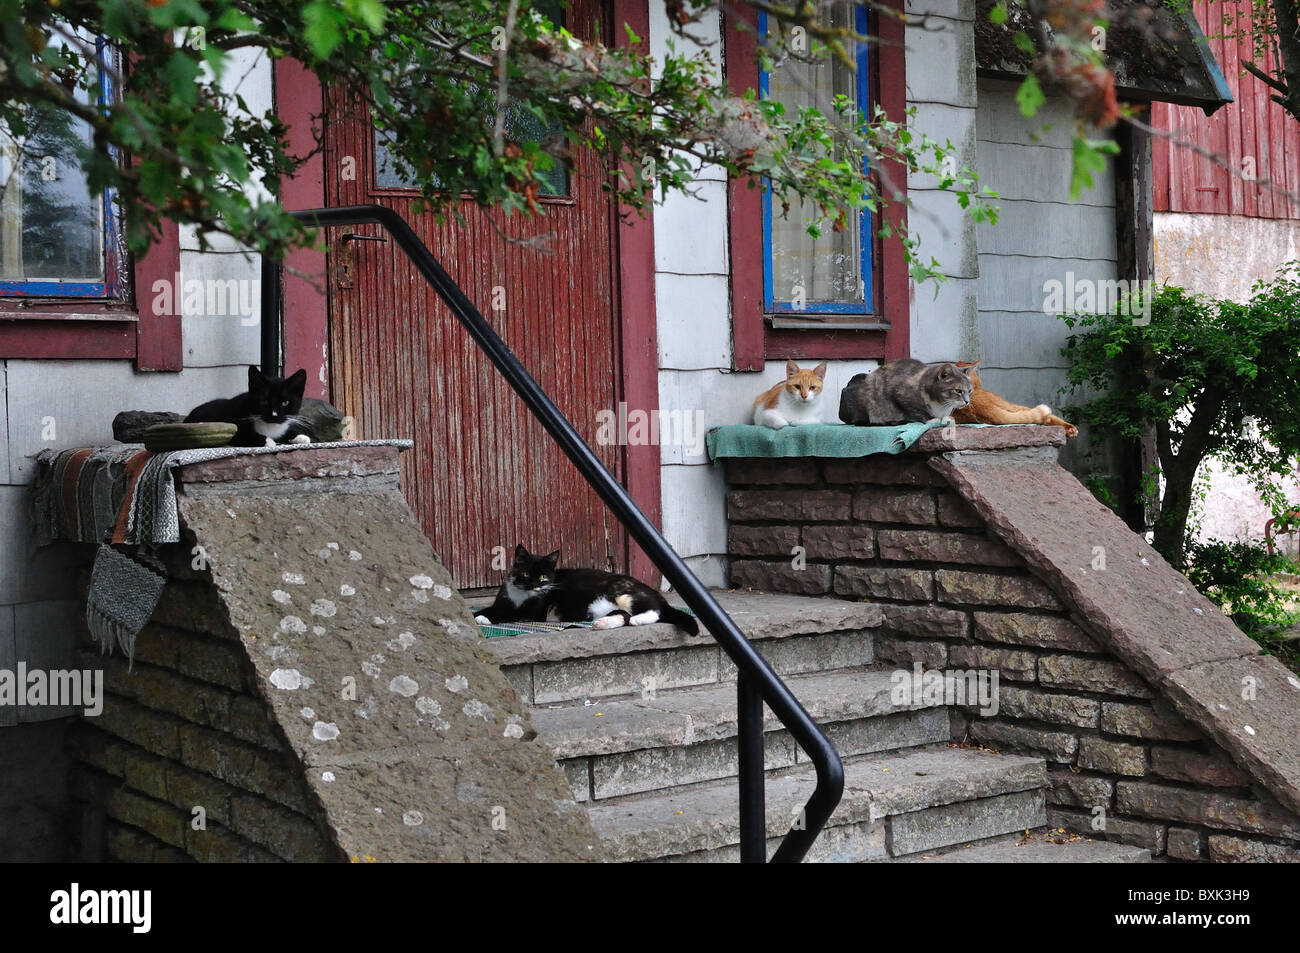 Several cats laying around an entrance to a old house. - Stock Image